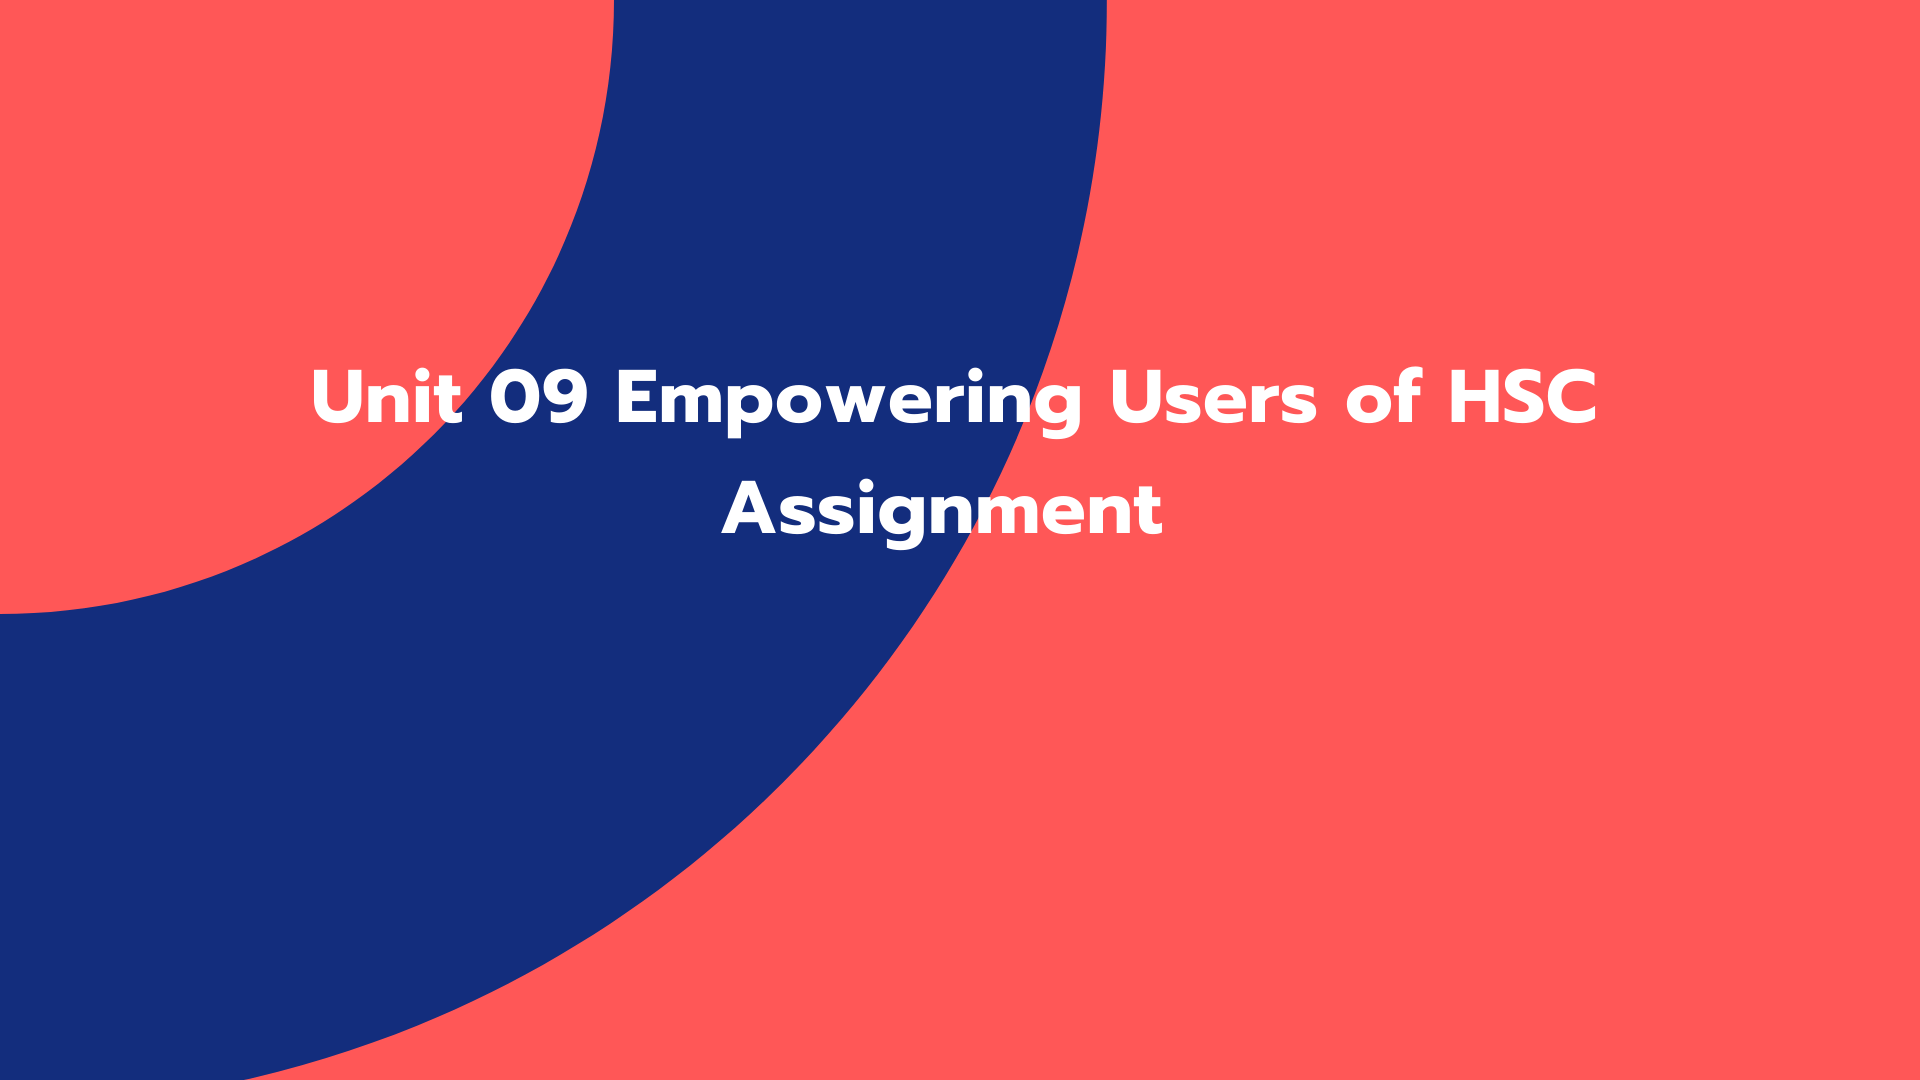 Unit 09 Empowering Users of HSC Assignment